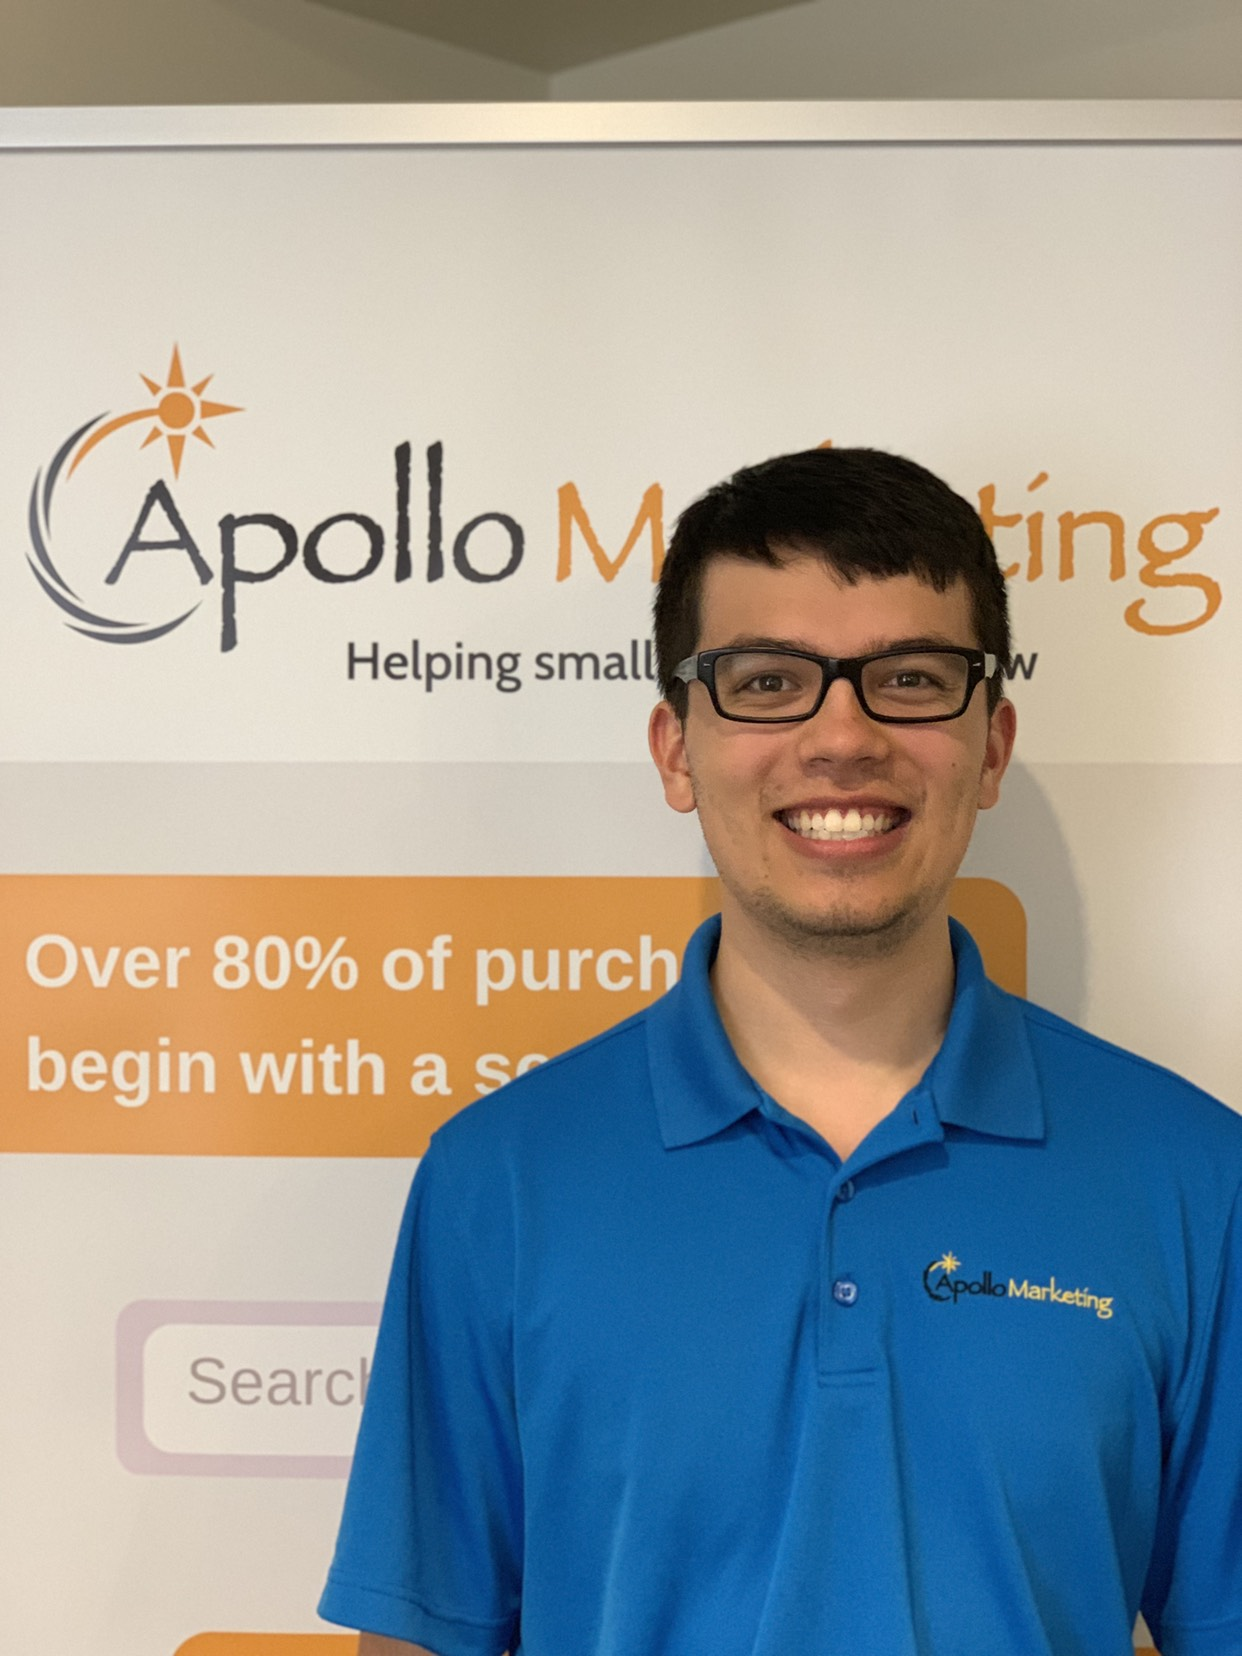 Meet the Apollo Marketing Team: Christian Villarosa